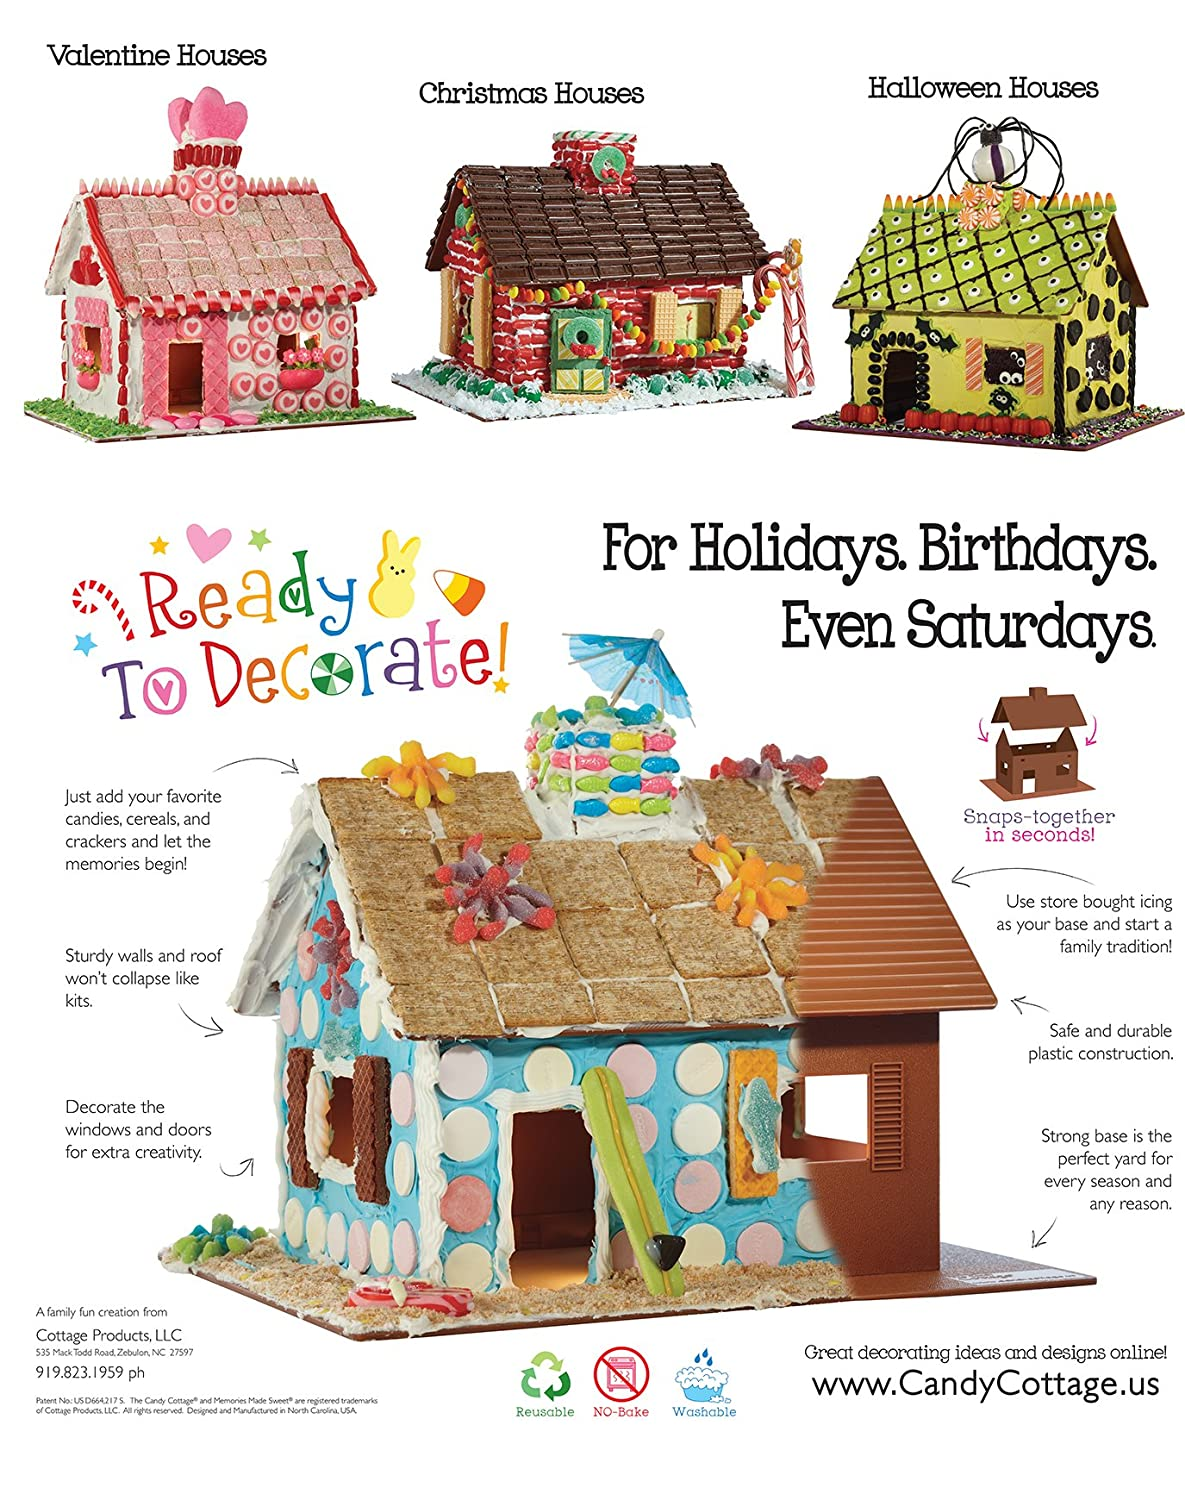 Christmas Gingerbread House Decorations.The Candy Cottage